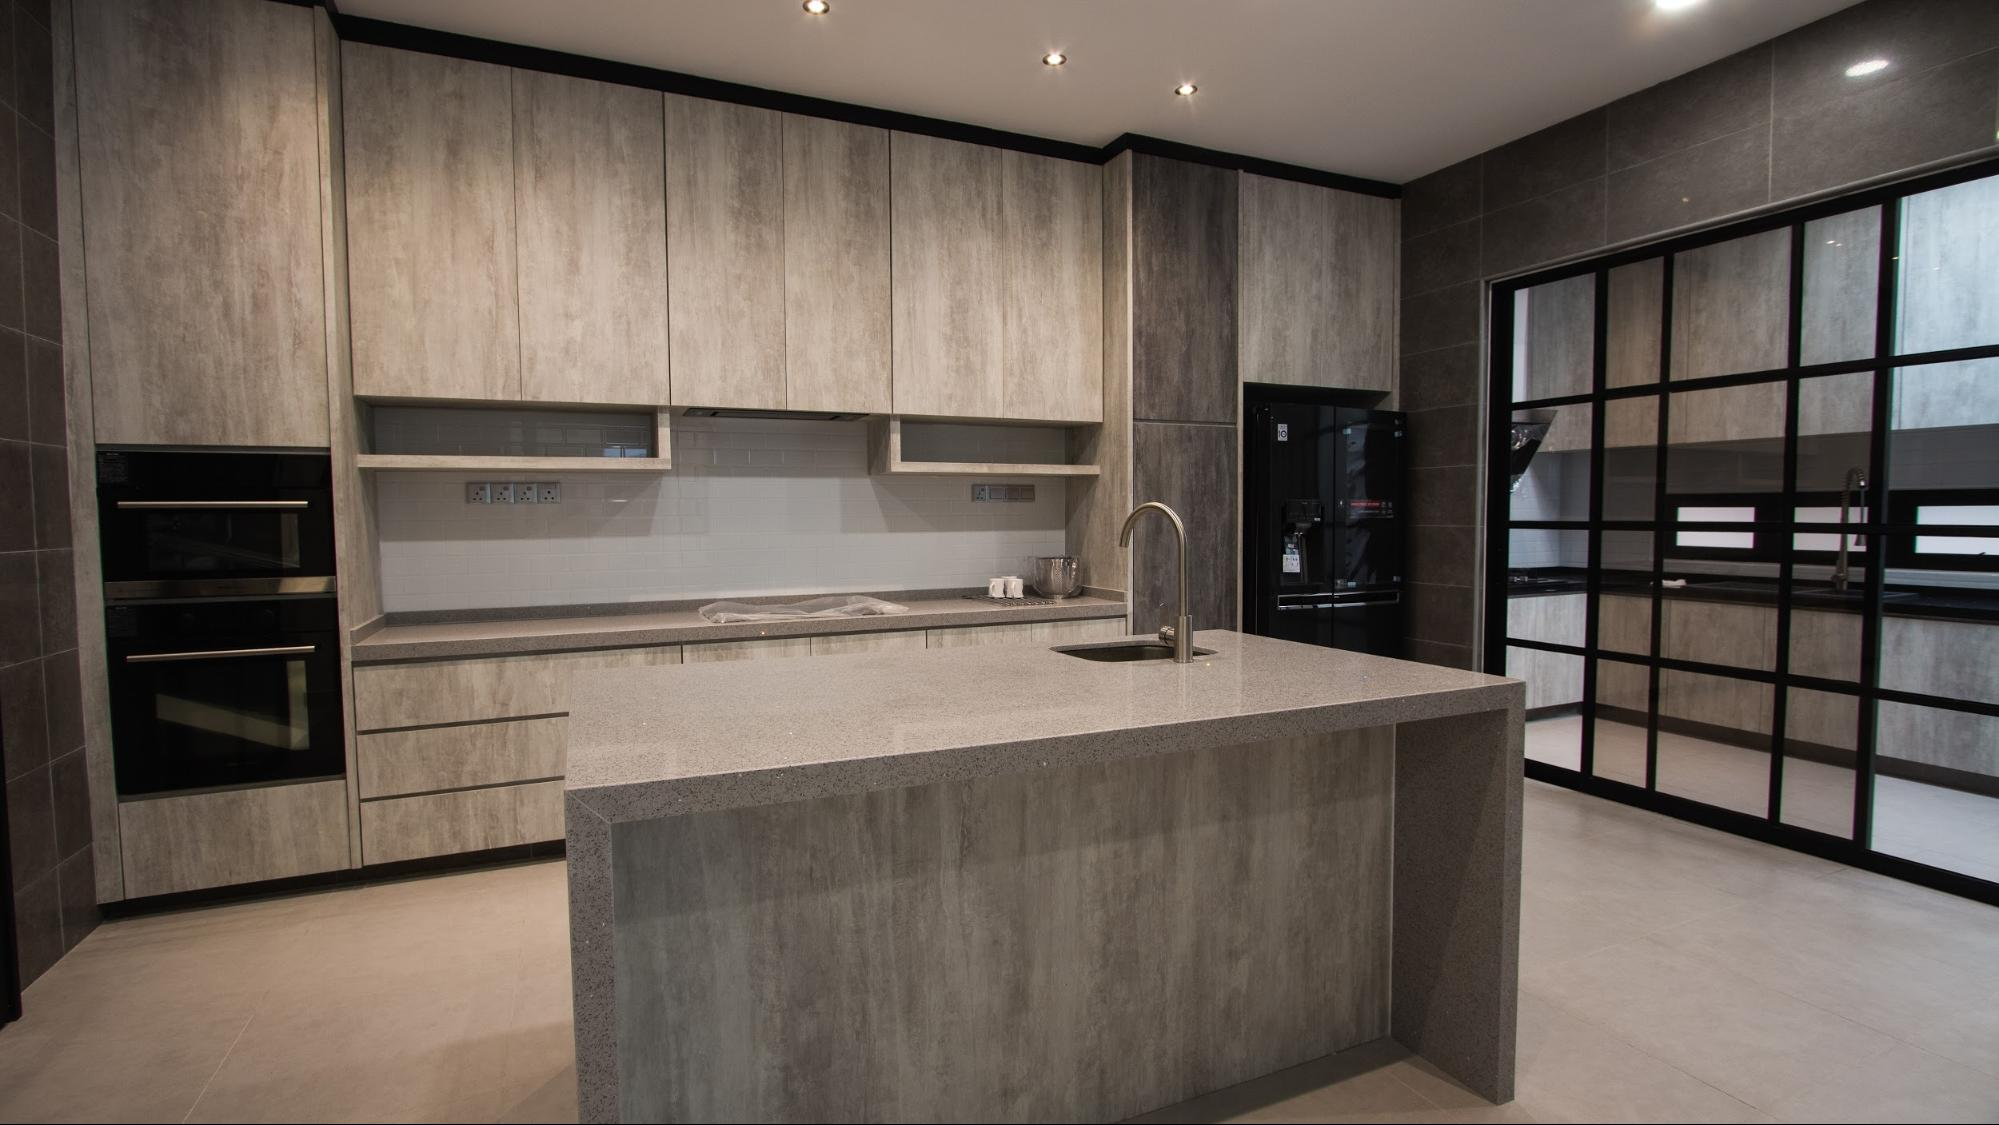 Modern industrial dry kitchen with concrete textures